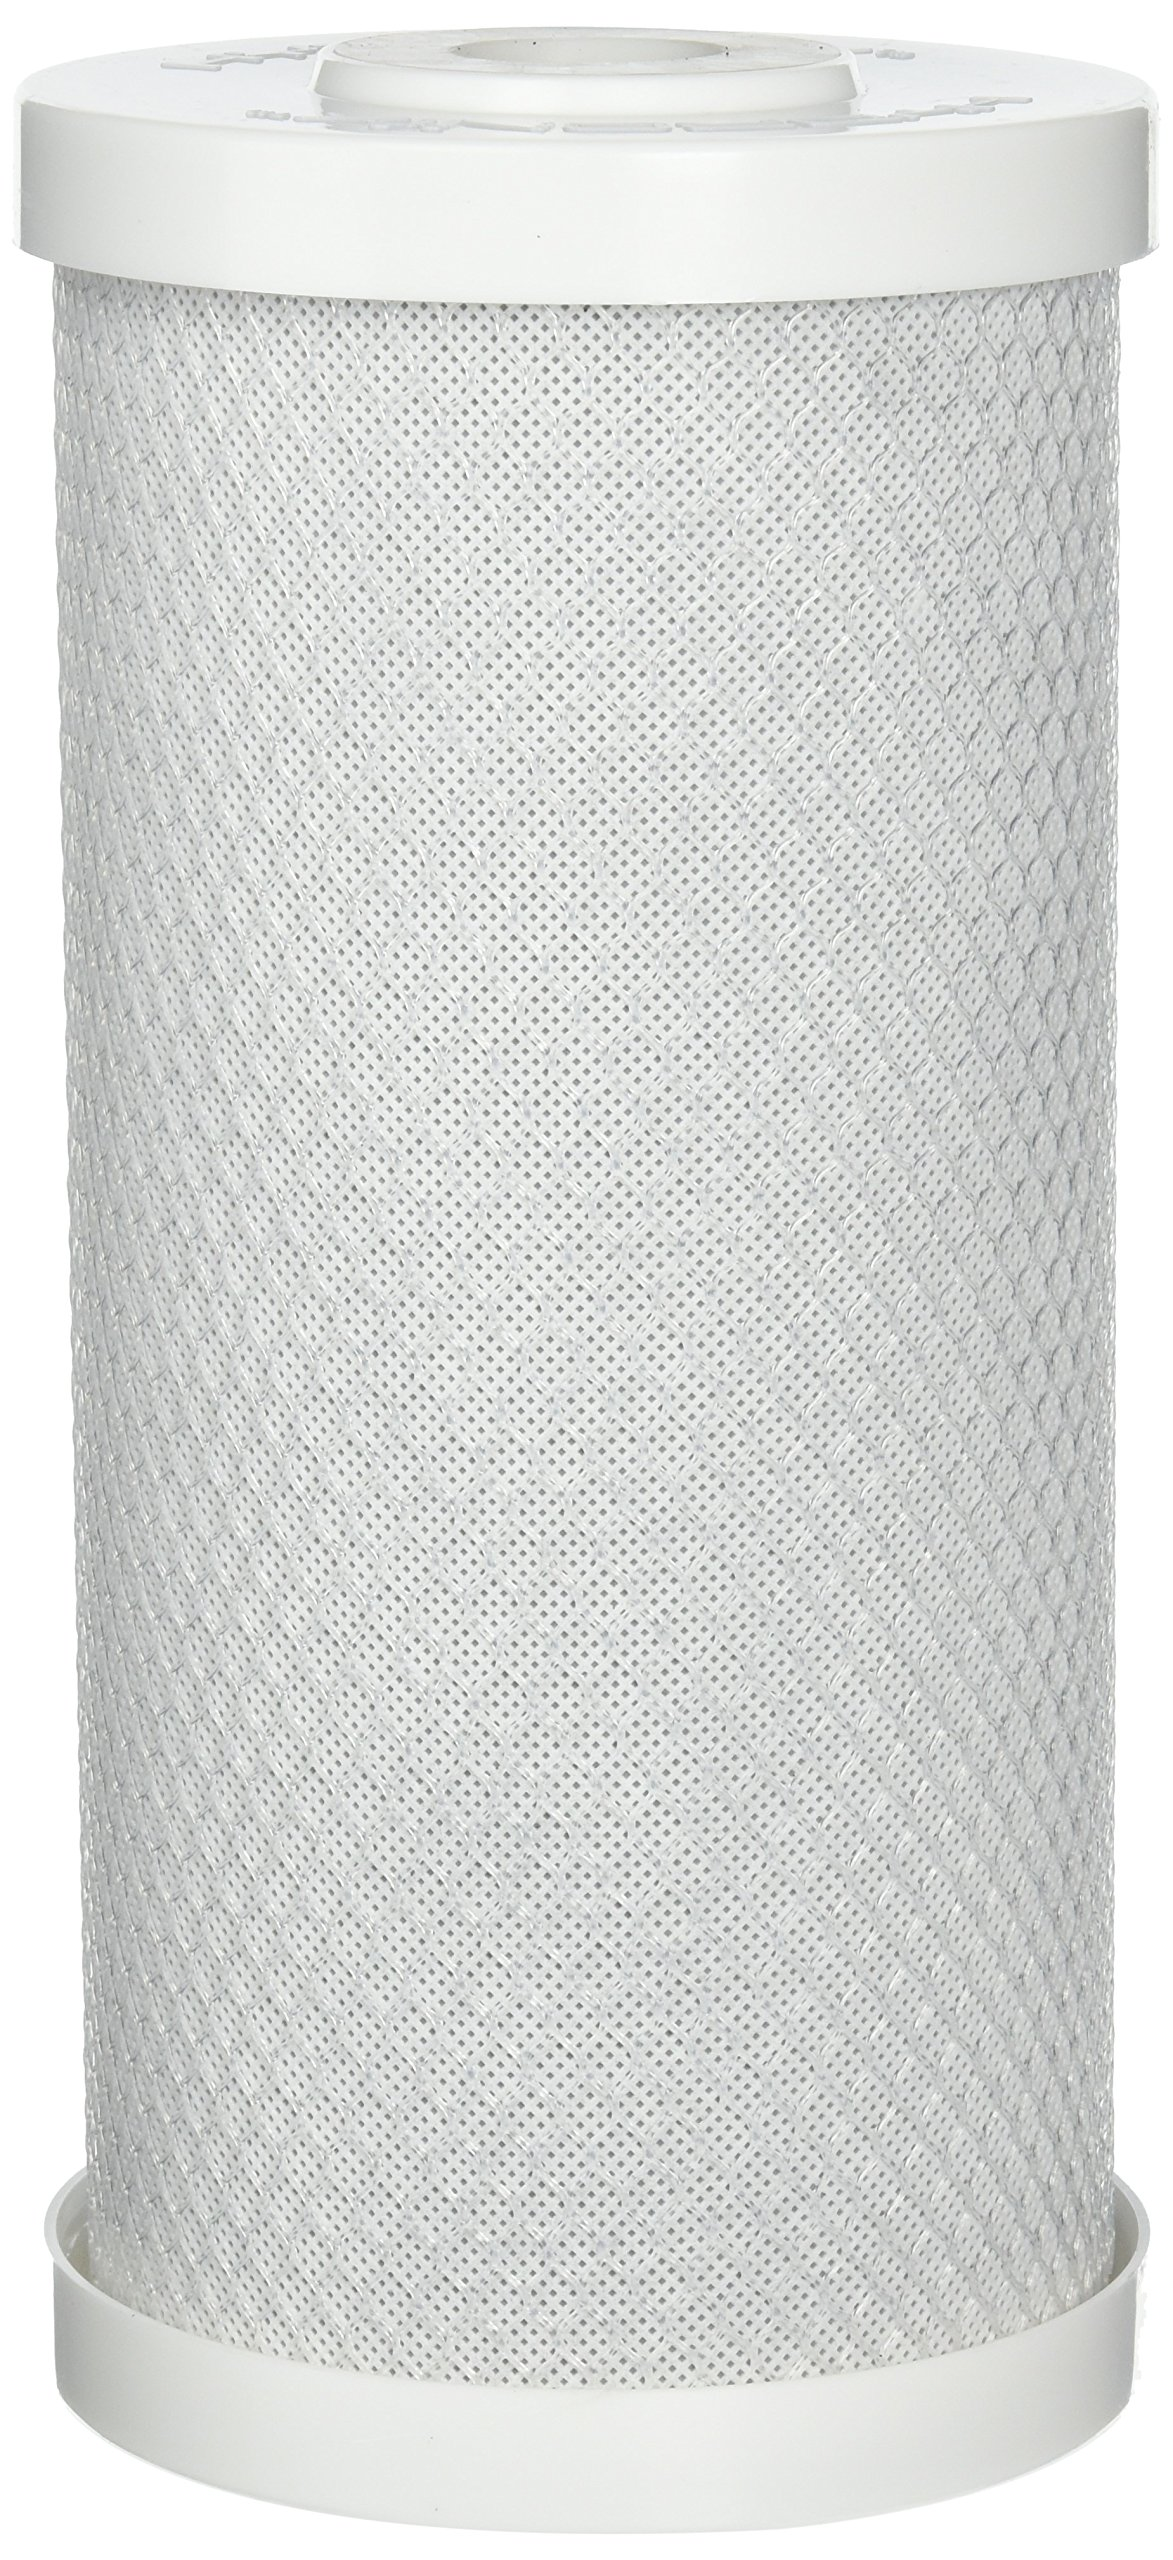 Hydronix CB-45-1010 Whole House or Commercial NSF Coconut Activated Carbon Block Water Filter, 4.5'' x 10'' - 10 Micron by Hydronix